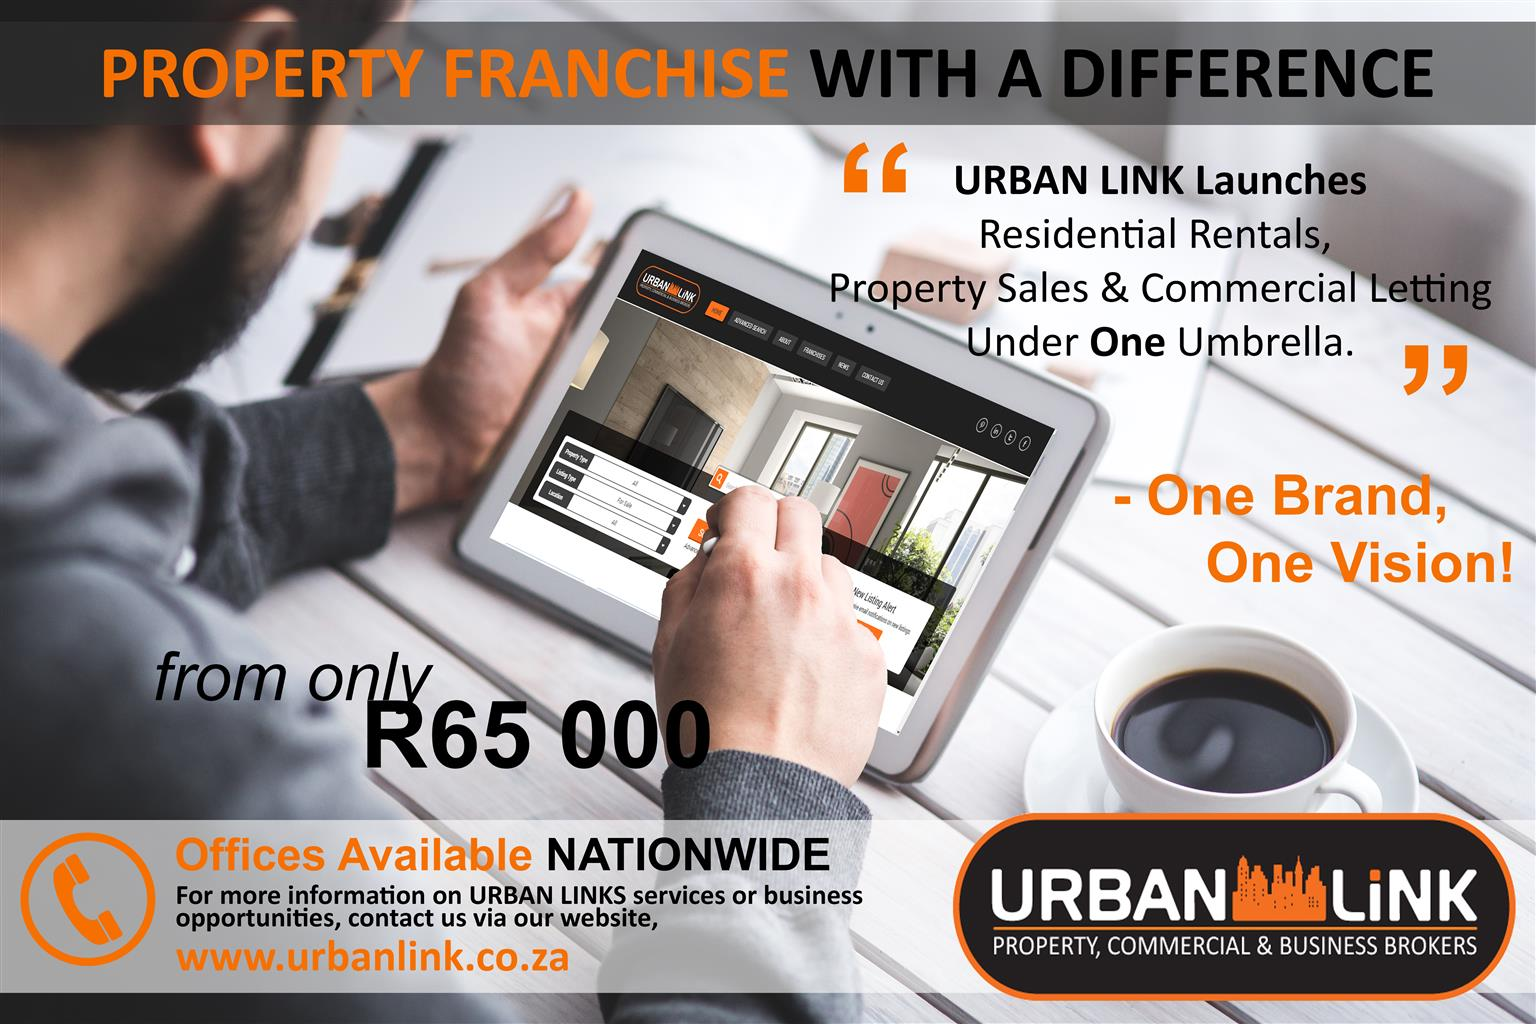 Own a successful property franchise